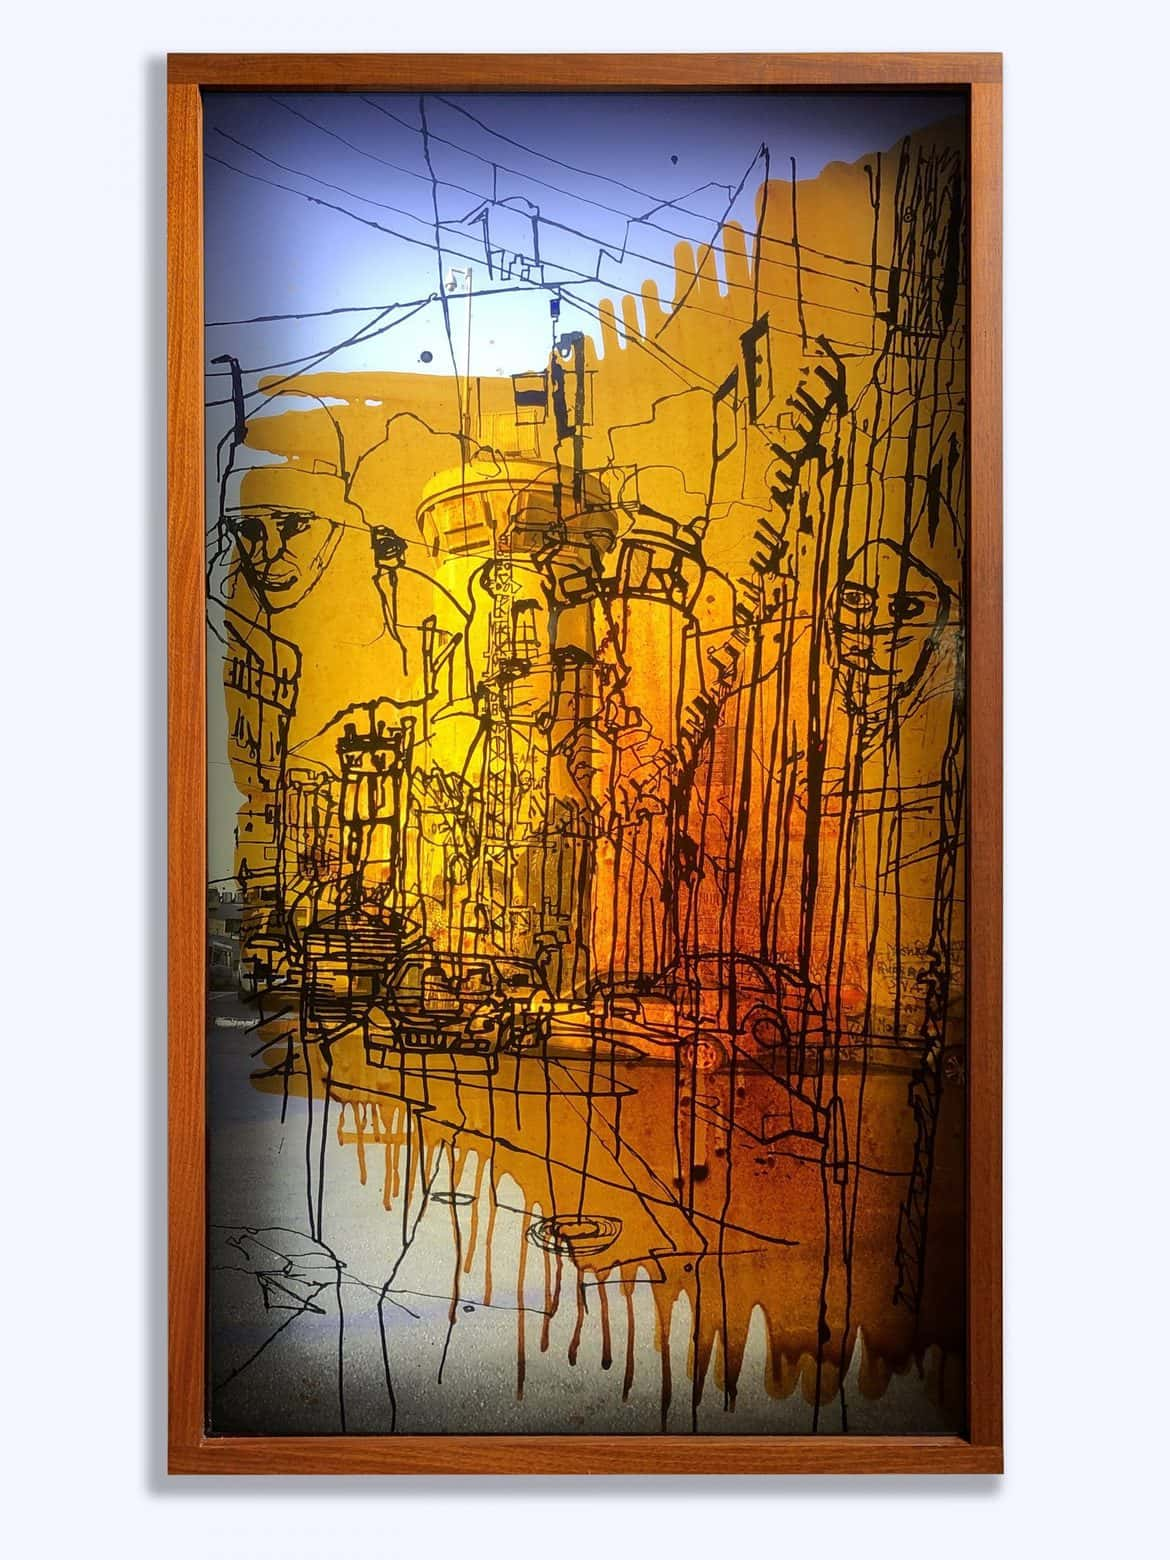 'Bethlehem', 2020, mixed media on translucent film with face-mounted photographic image on acrylic in framed light box,140 x 80 x 11 cm (straight)